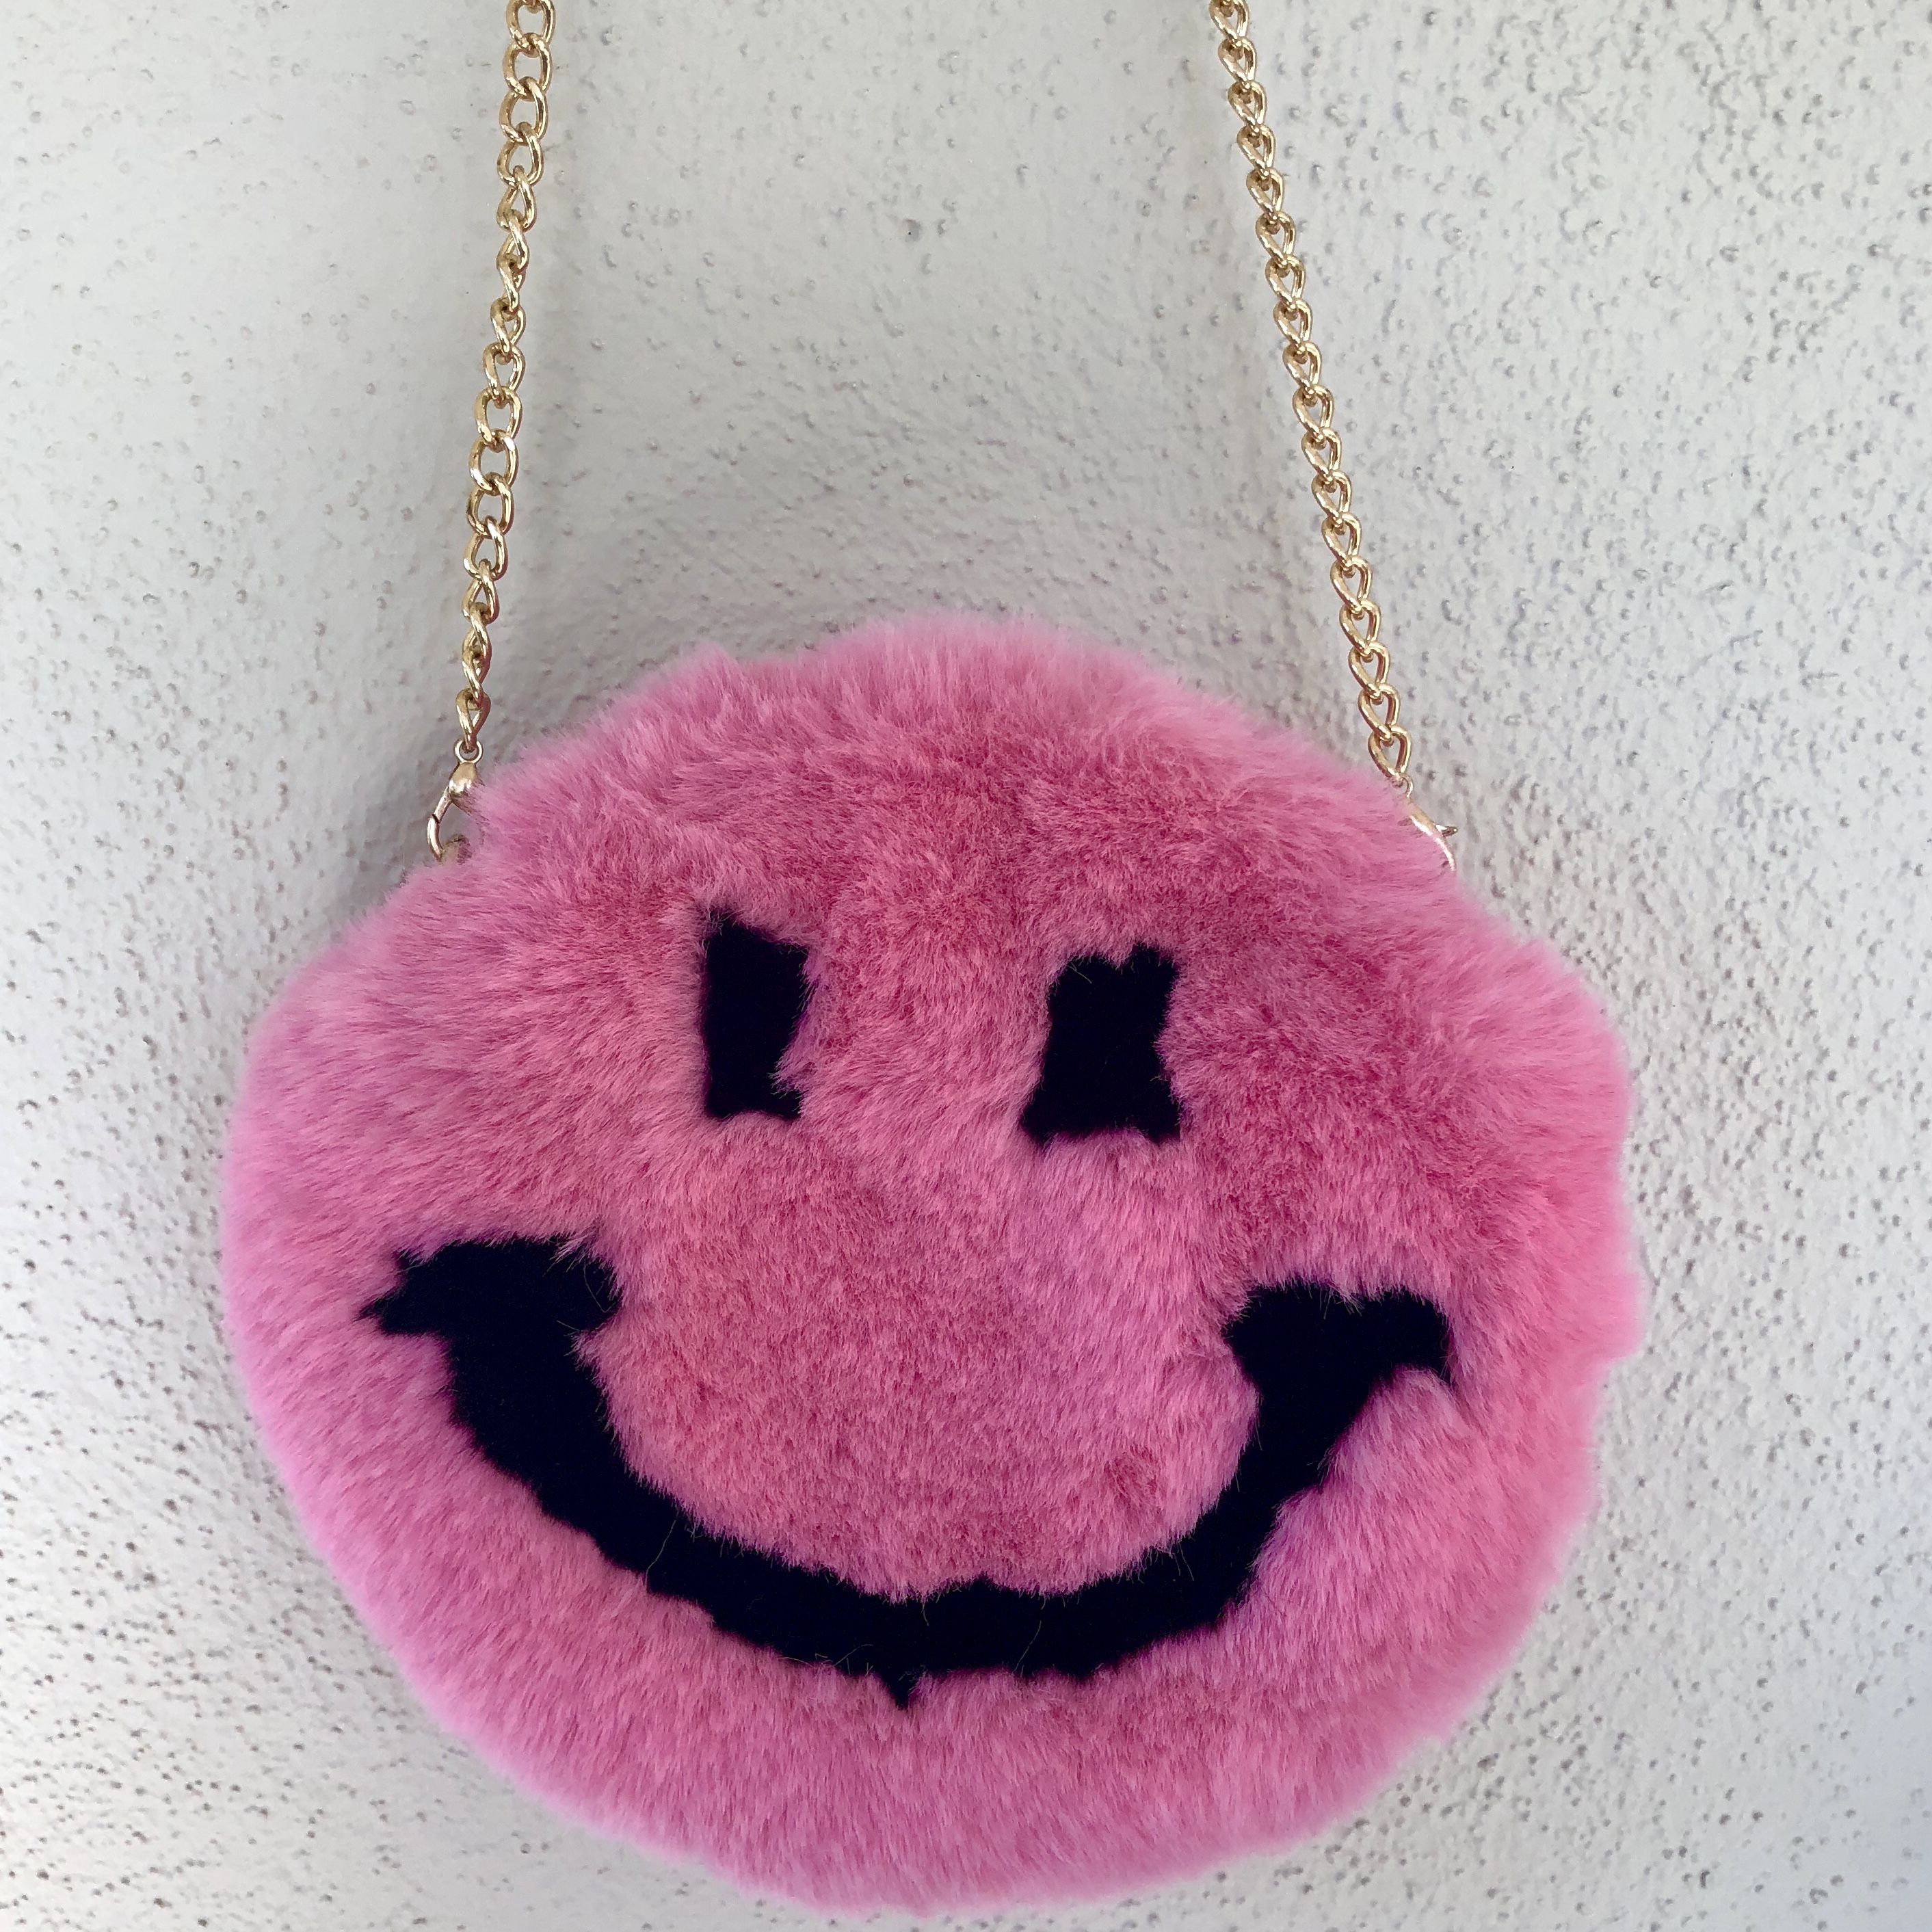 Fuzzy Pink Smiley Face Purse 👛 BRAND NEW CONDITION    - Depop